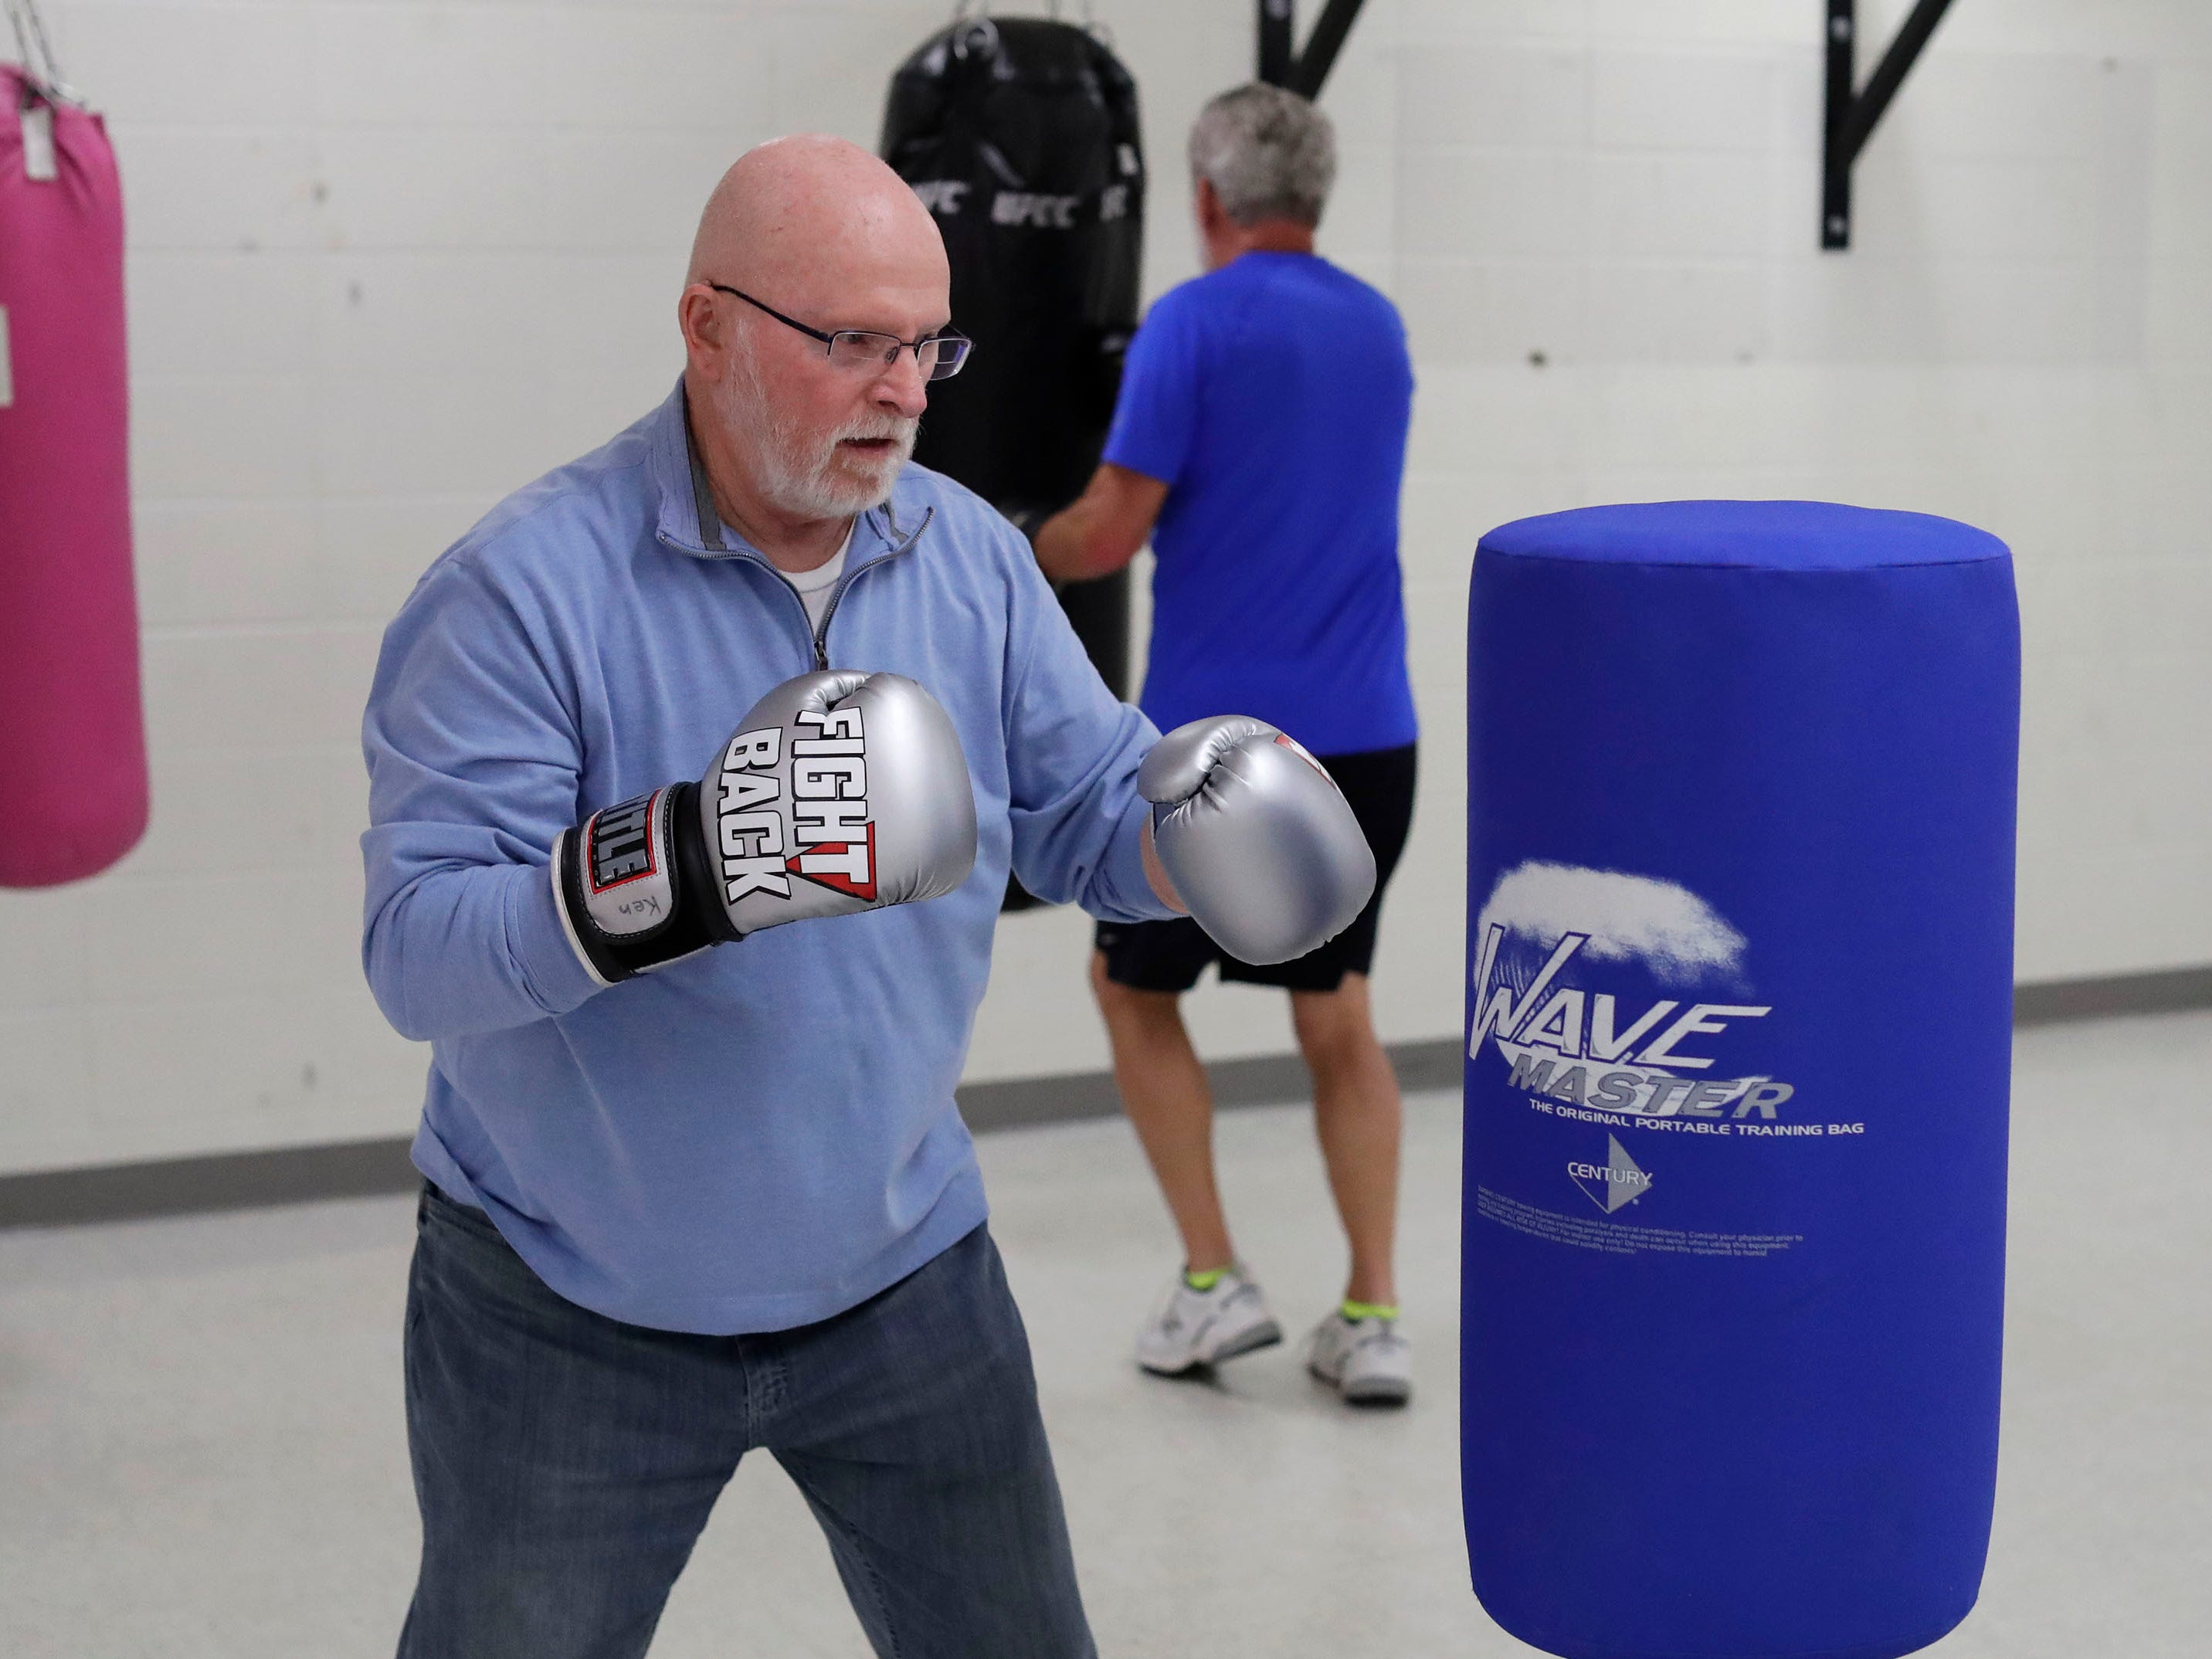 Ken Pipping of Elkhart Lake, Wis, gets in his boxing routine during the Fighting Parkinson's class at the YMCA, Tuesday, March 26, 2019, in Sheboygan, Wis.